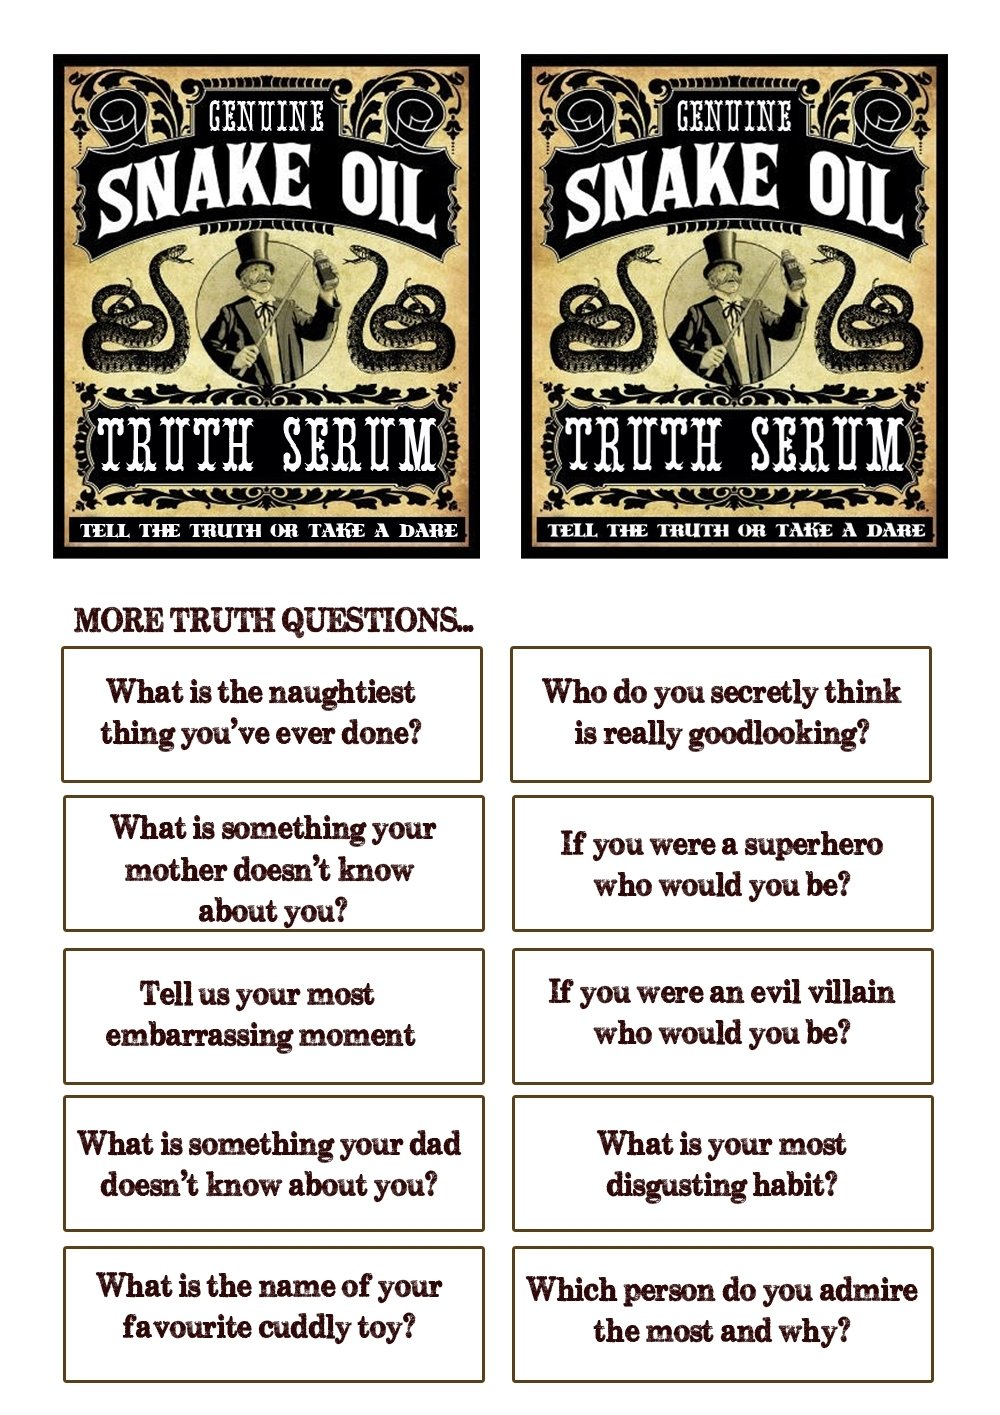 10 Great Truth Or Dare Dare Ideas great fun etc family fun cowboy cookout with truth or dare 5 2020